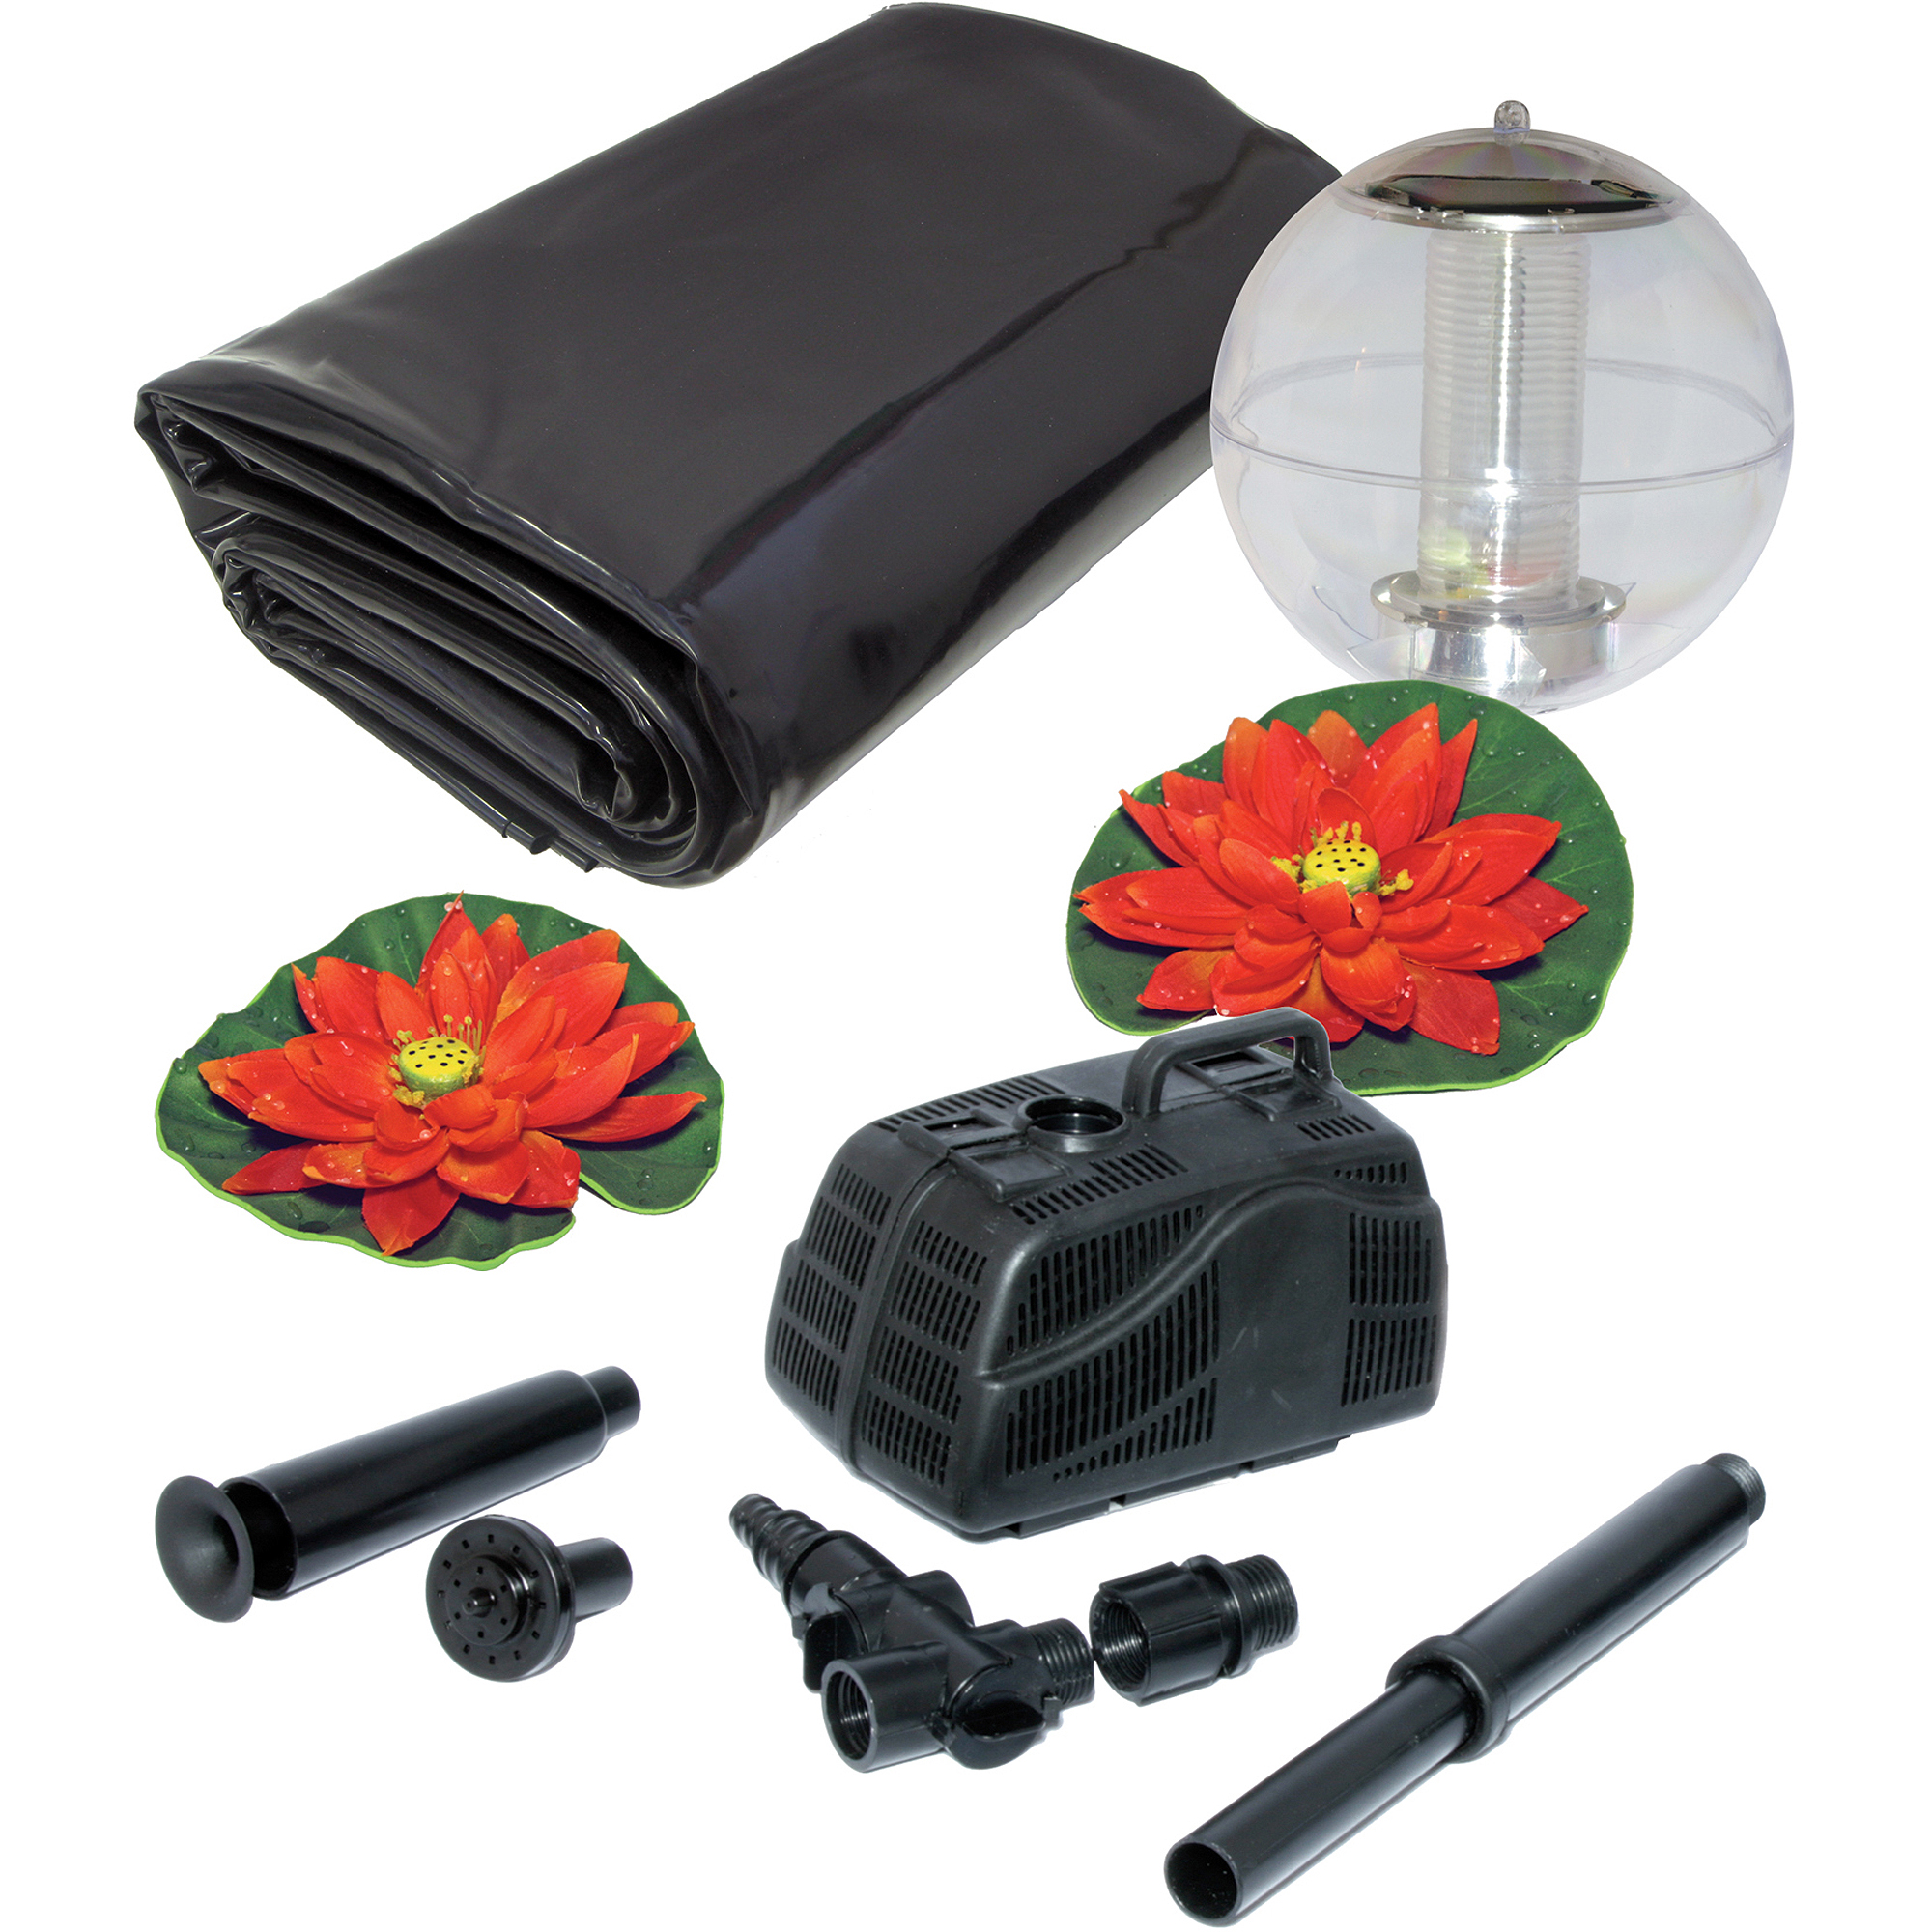 Koolscape 400 gal Liner Pond Kit with Solar Light by Generic